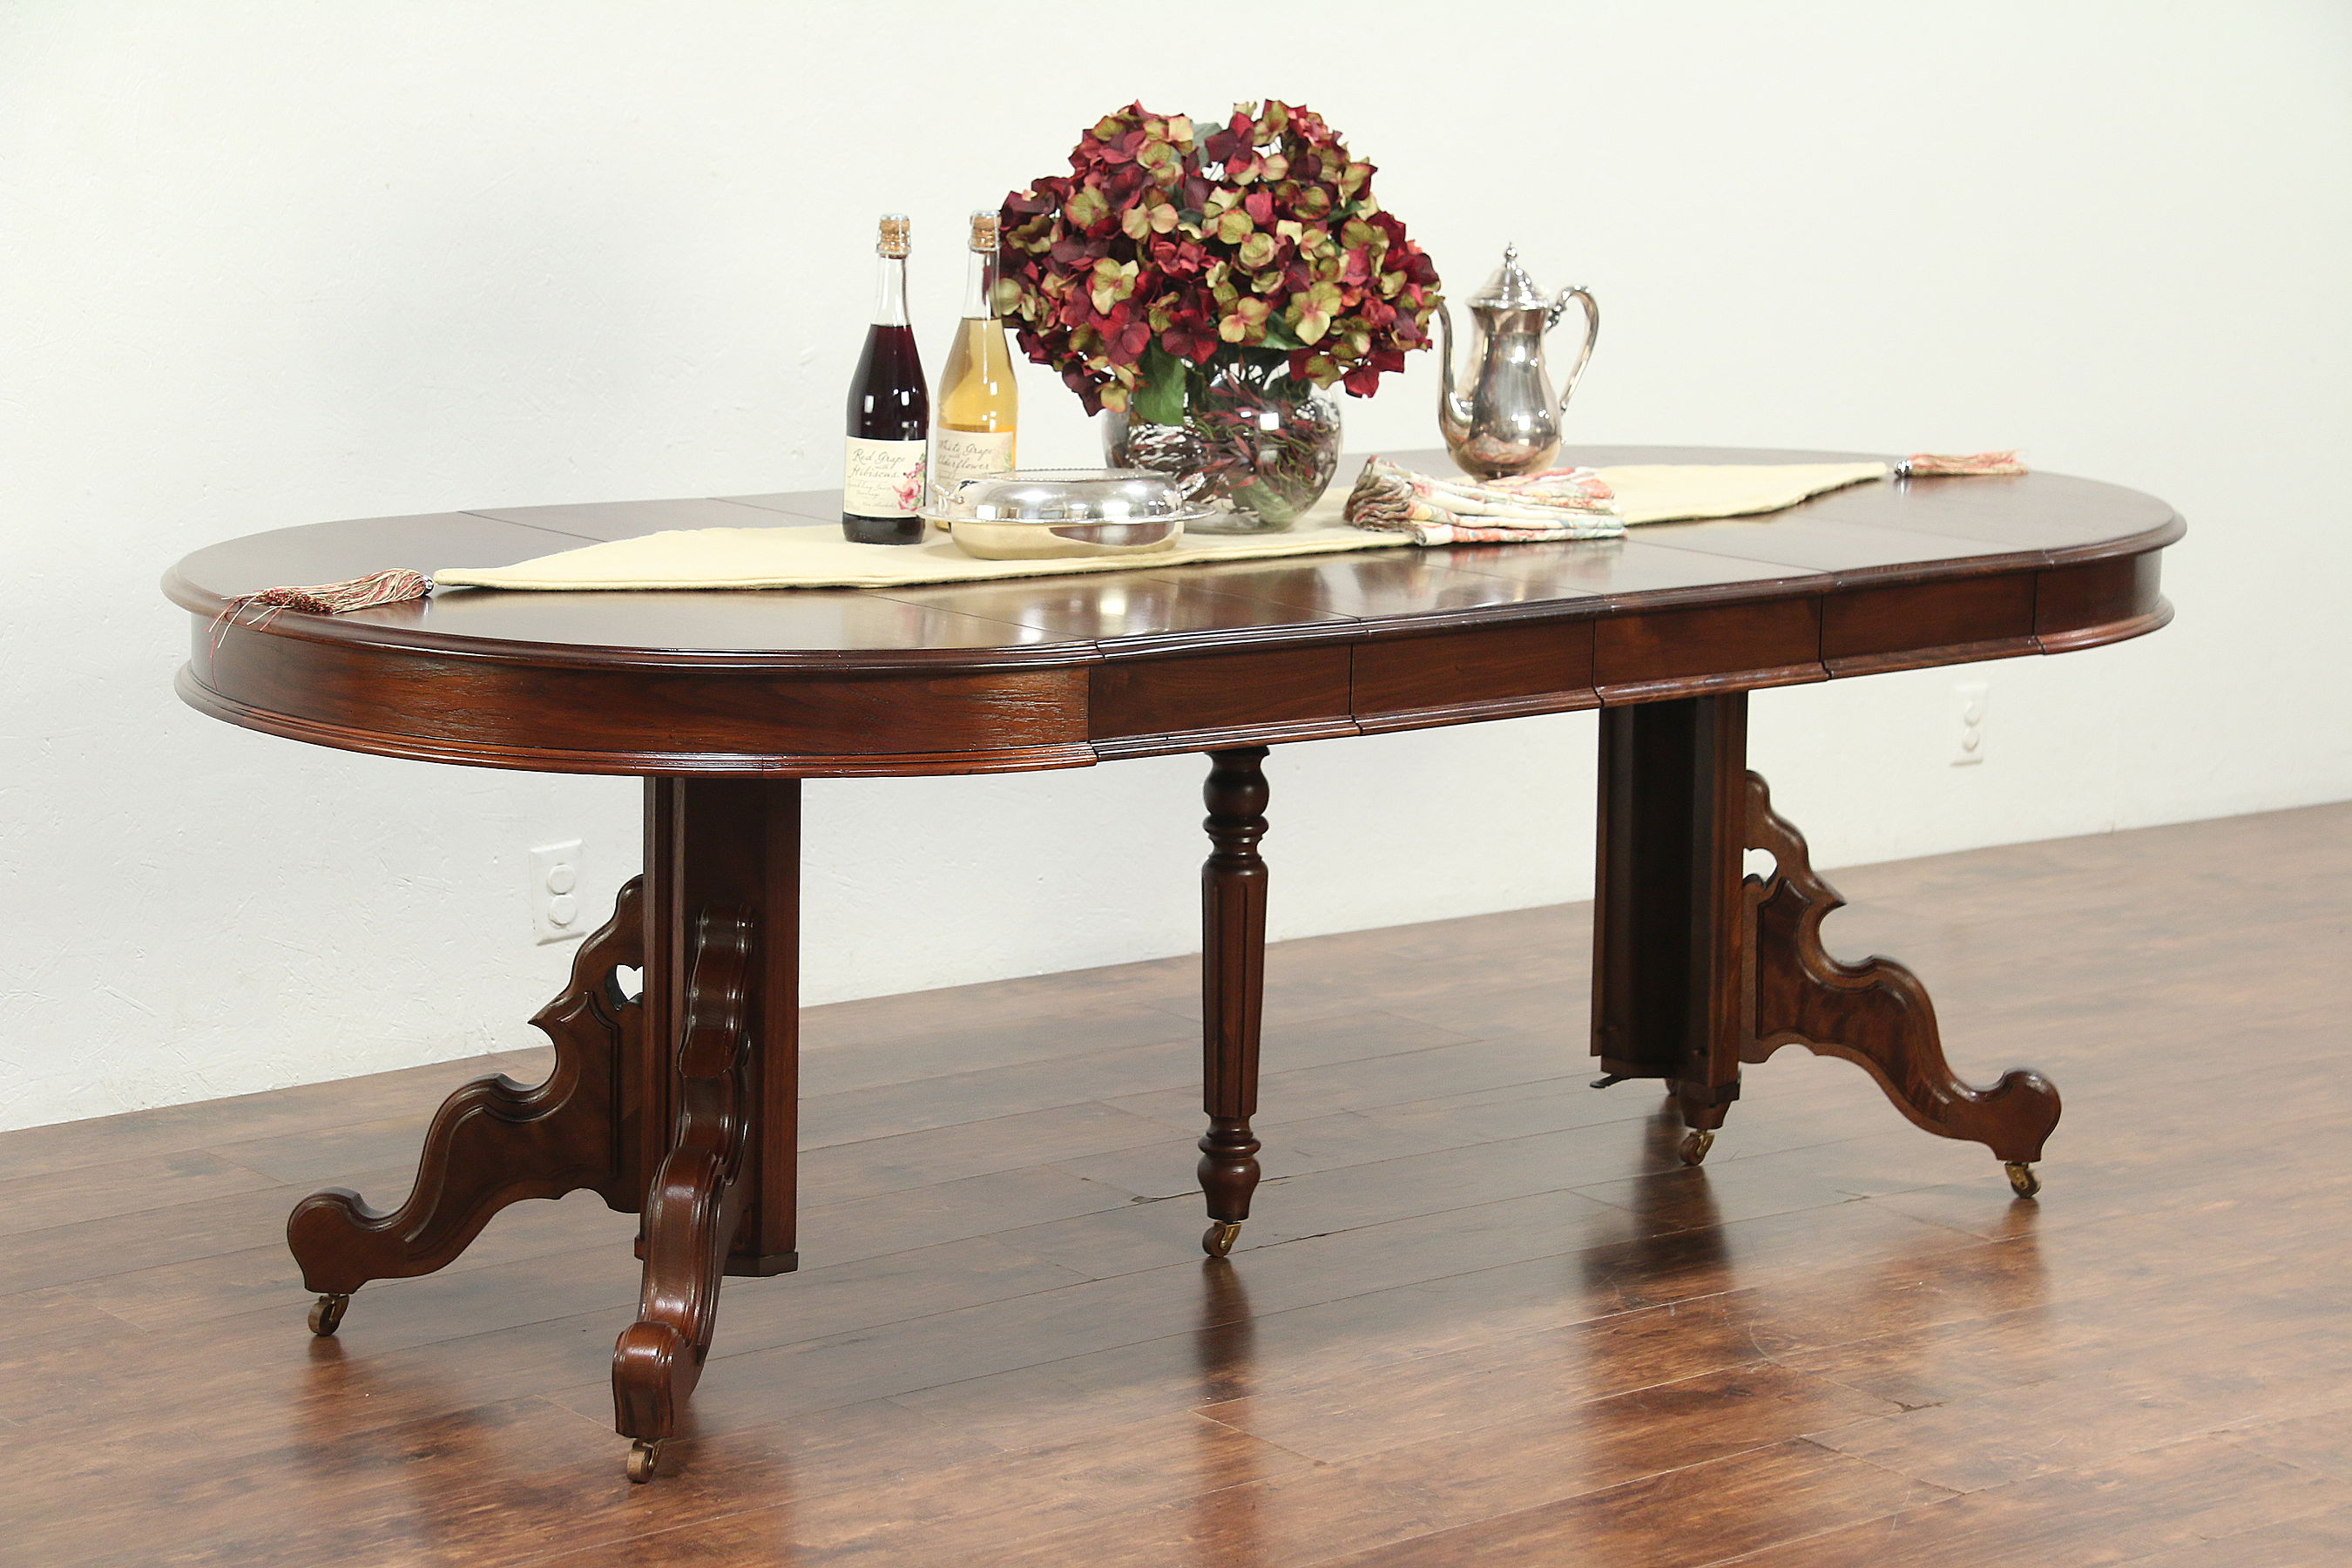 Victorian Antique Round Walnut Dining Table, 4 Leaves, Extends 7\' 5\